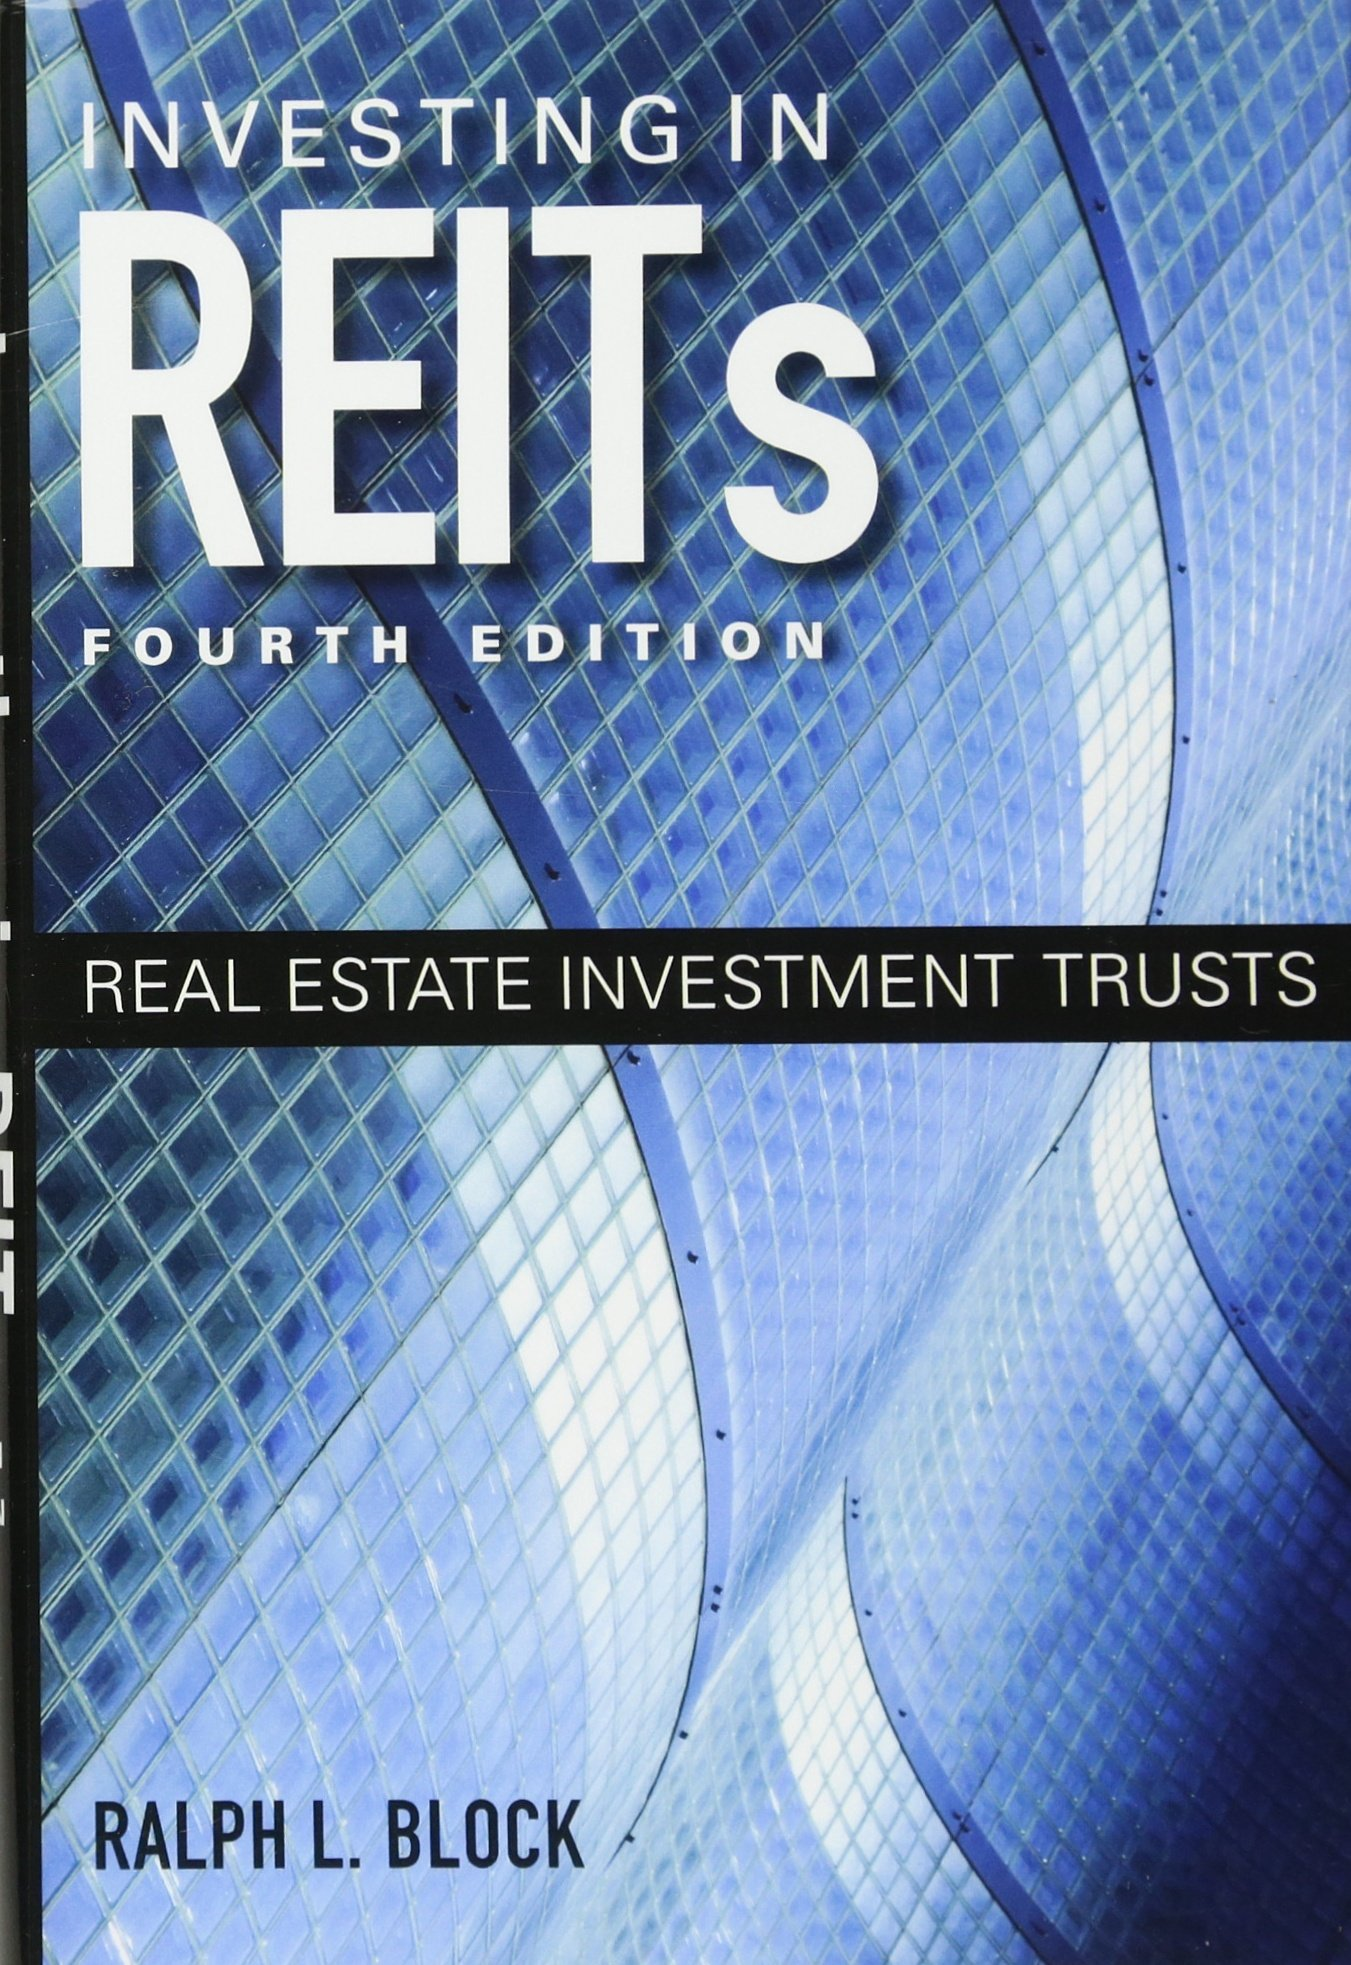 Investing in reits real estate investment trusts ralph l block investing in reits real estate investment trusts ralph l block 9781118004456 amazon books fandeluxe Image collections